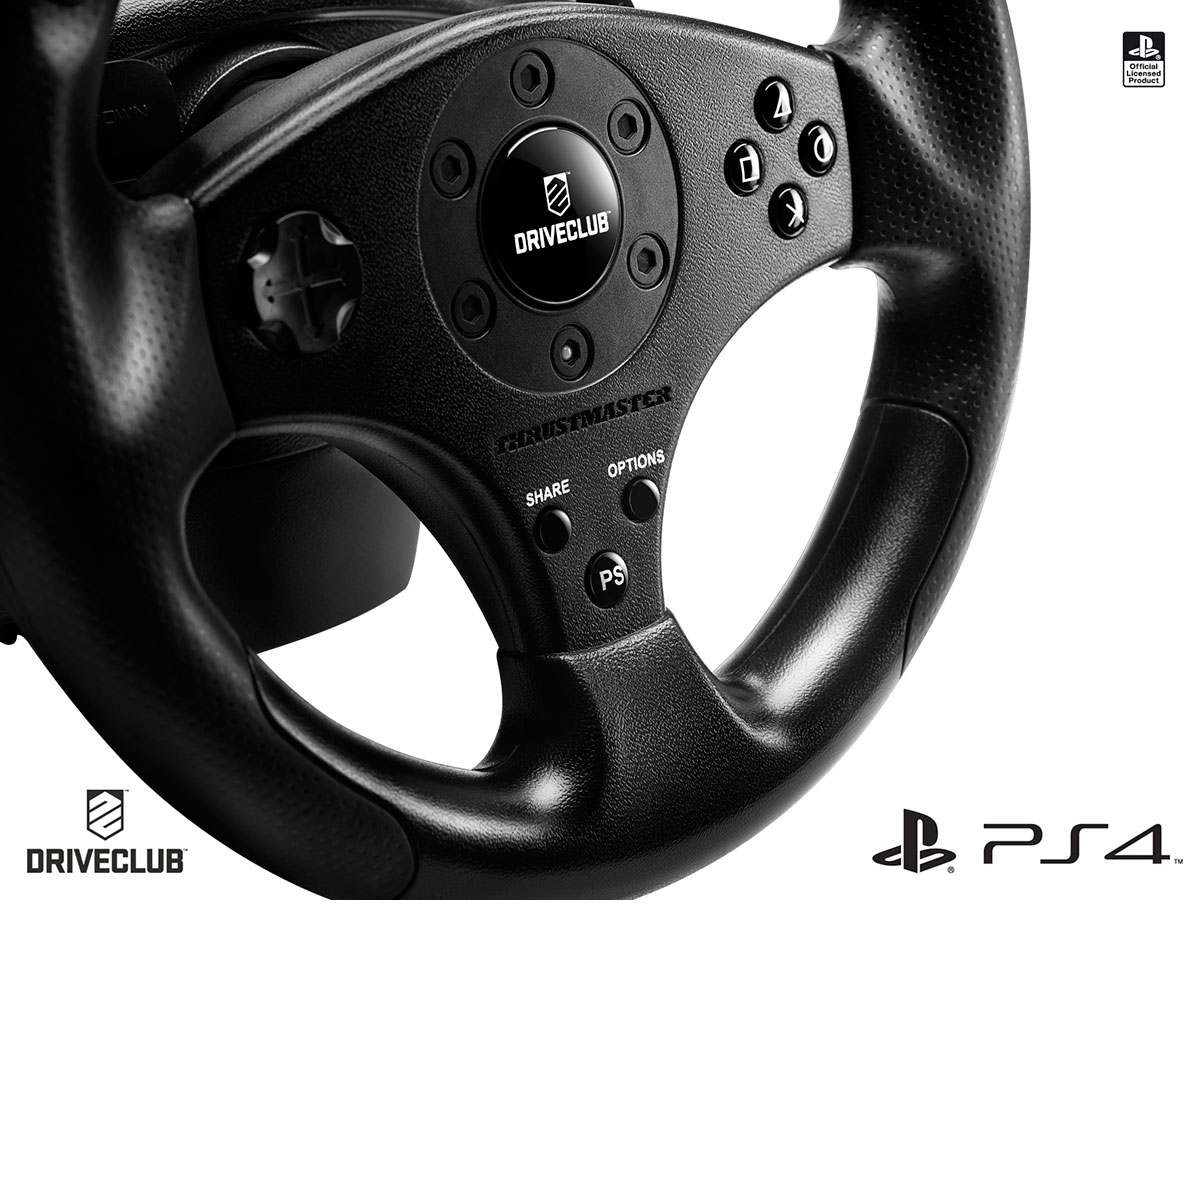 thrustmaster t80 driveclub edition ps4 accessoires ps4 thrustmaster sur. Black Bedroom Furniture Sets. Home Design Ideas